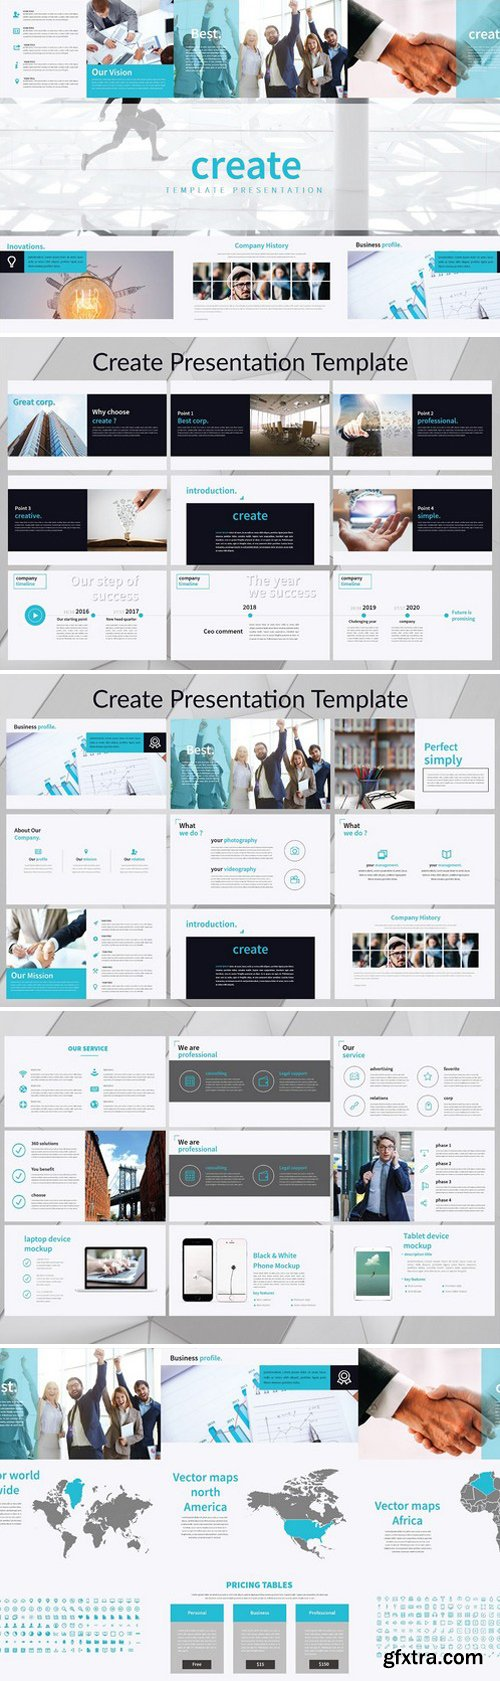 CM - Create Presentation Template 2322265